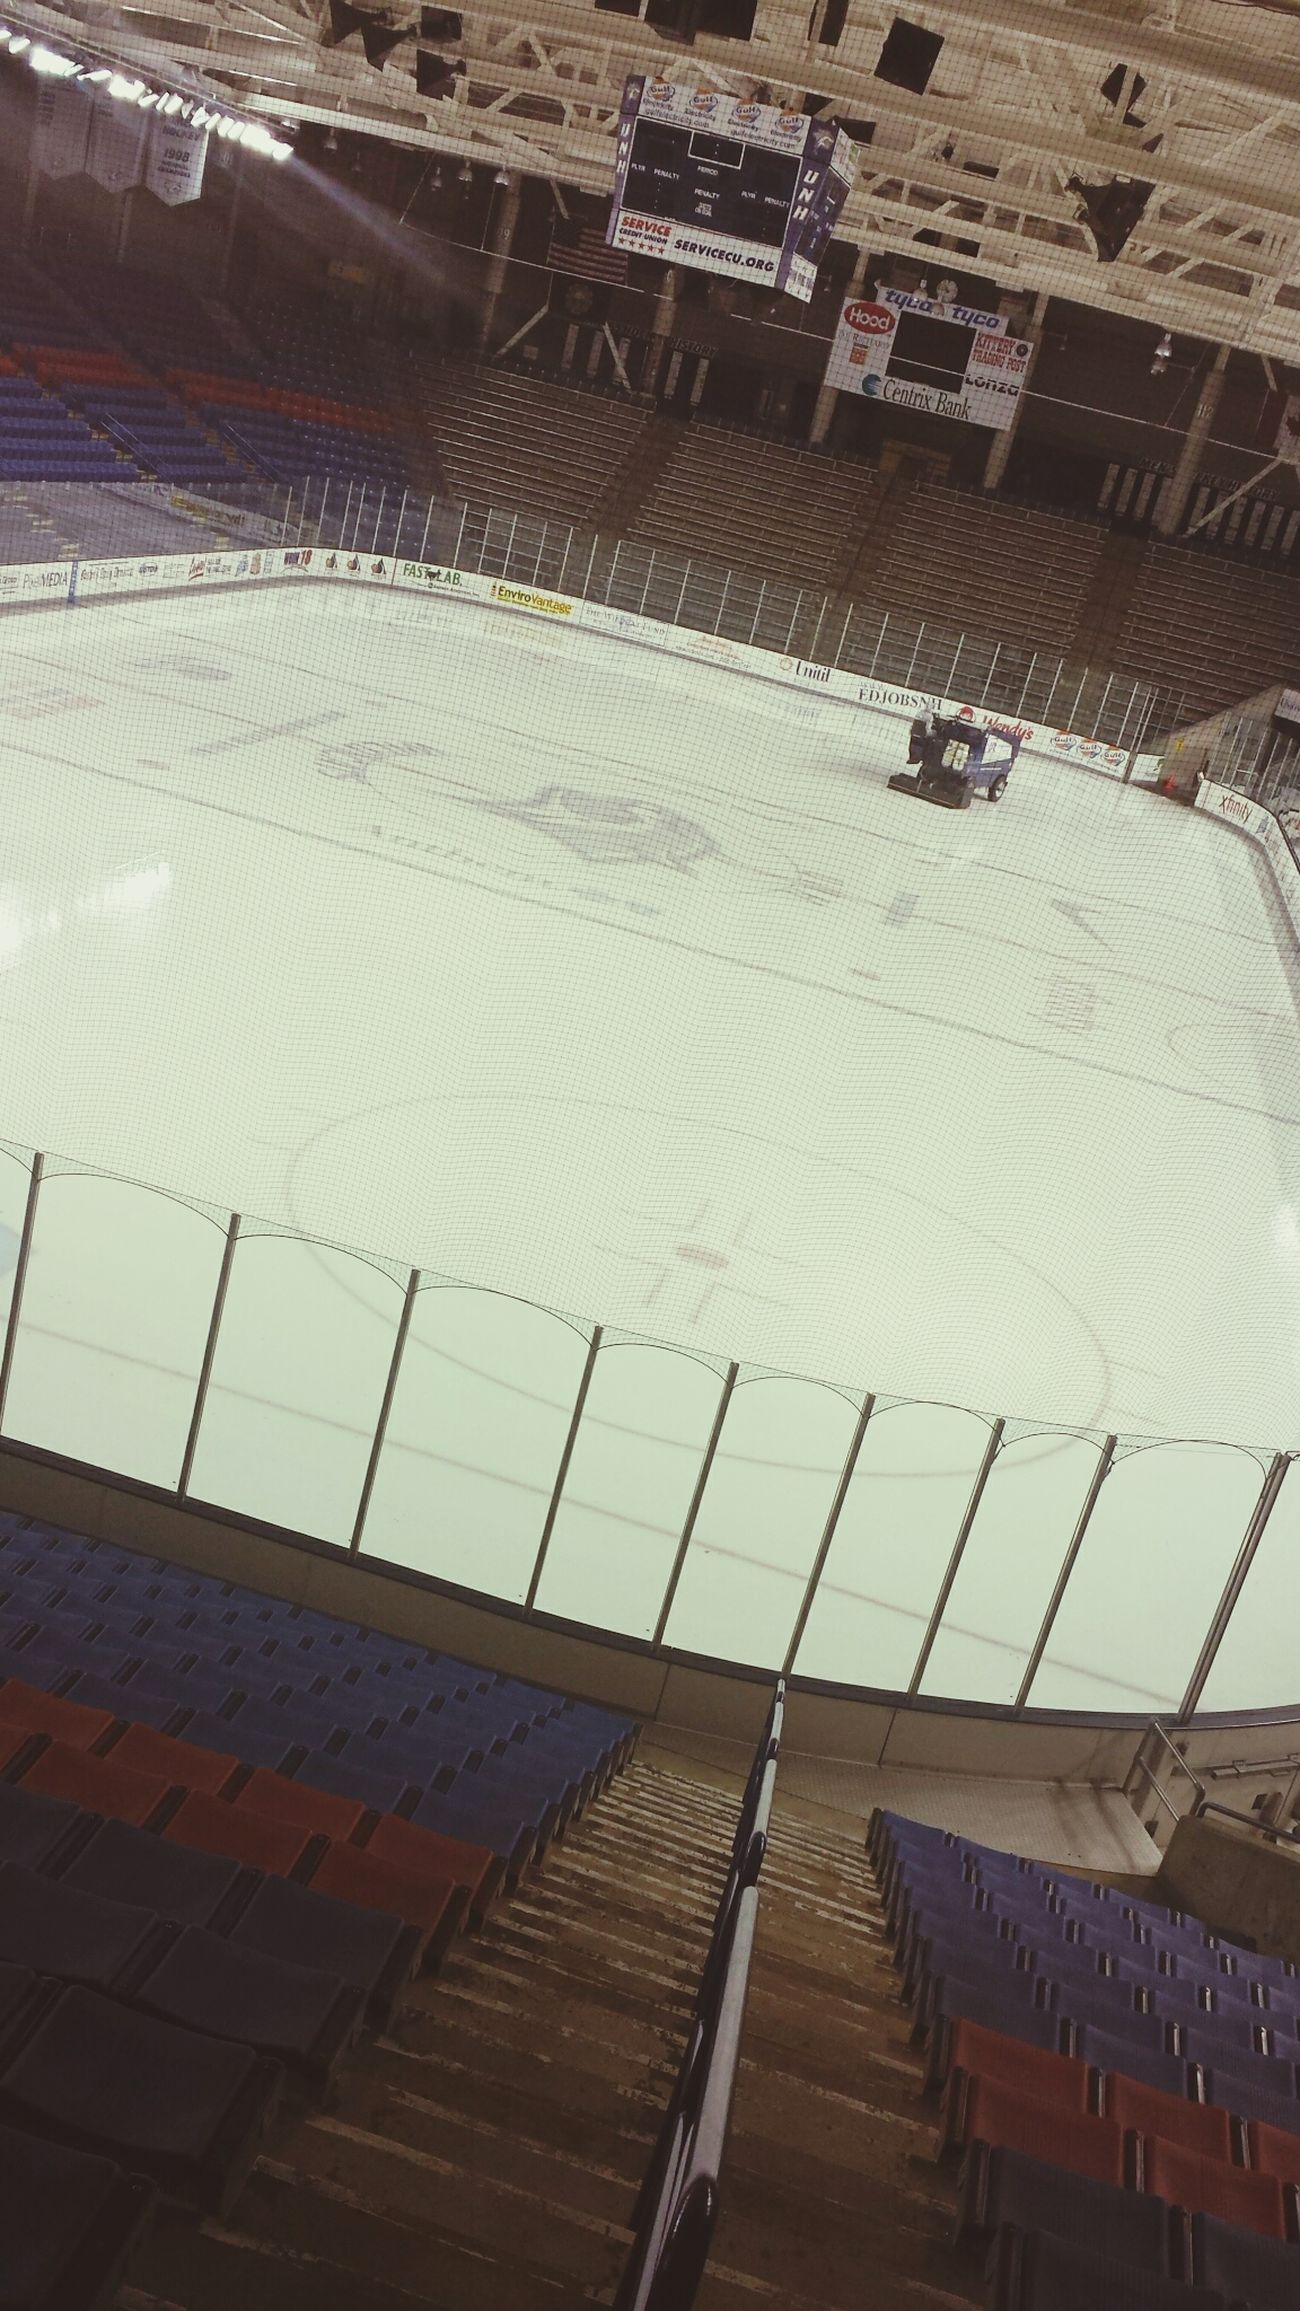 UNH college visit checking out the hockey arena ??